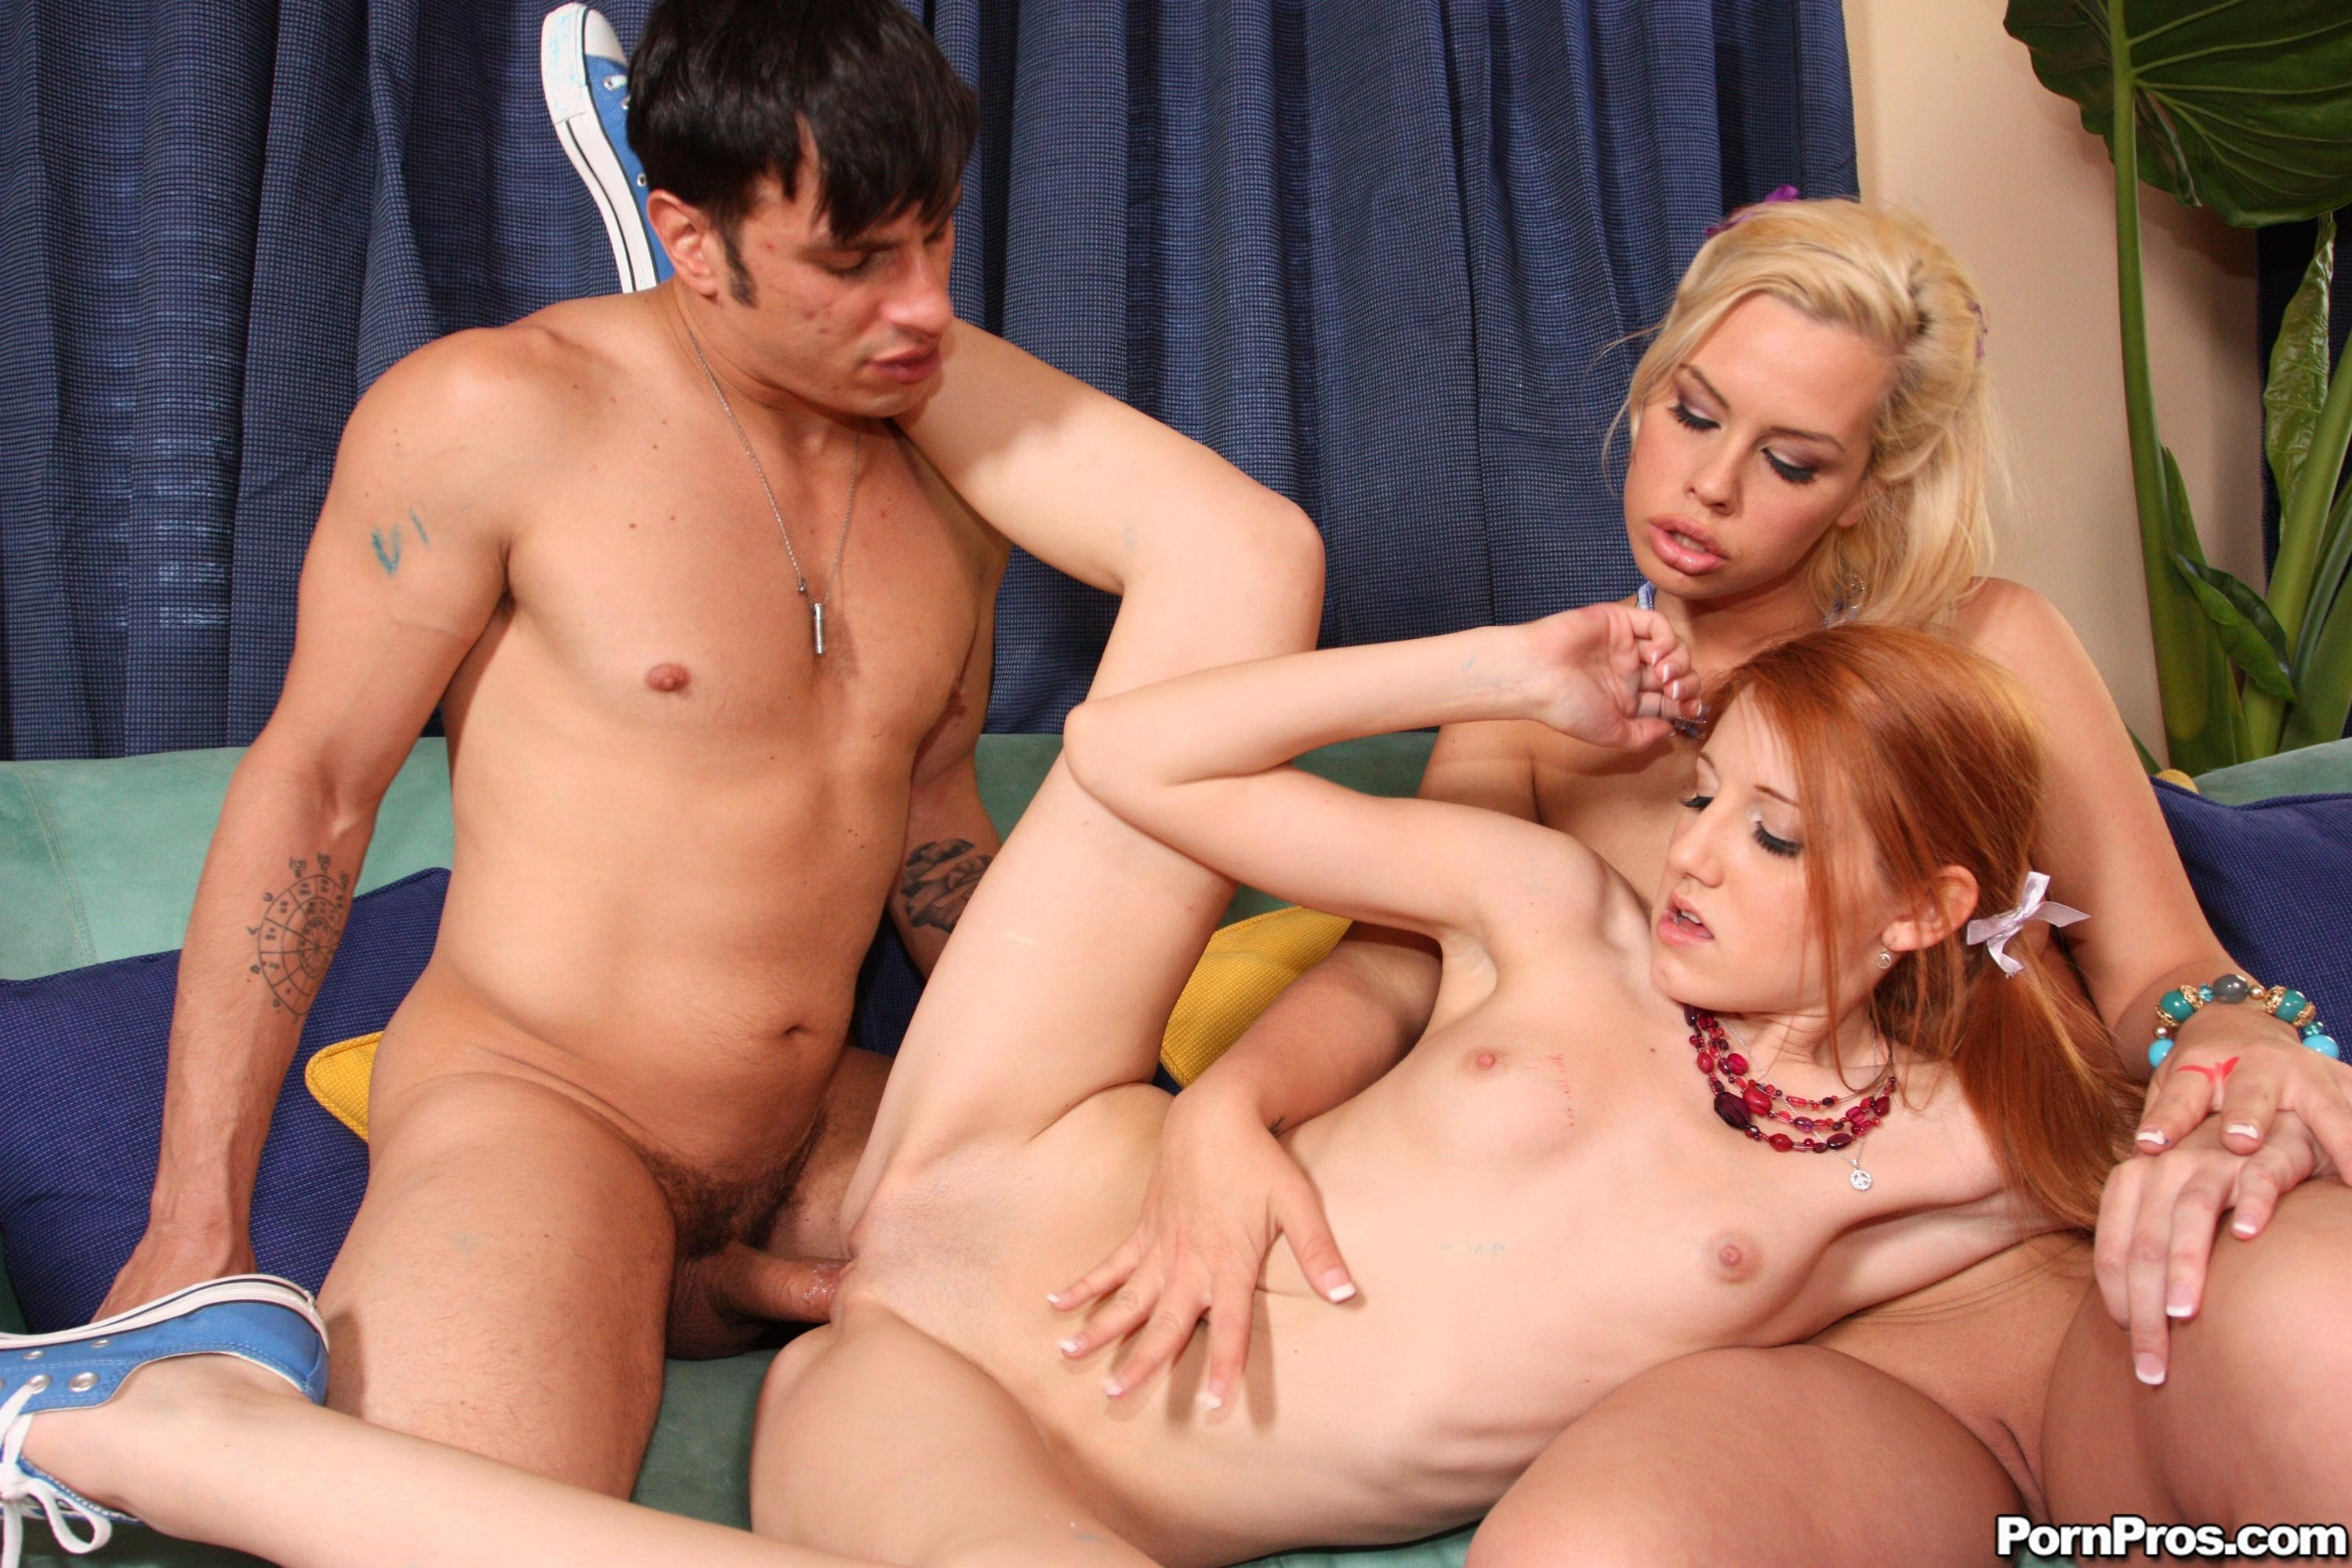 hairy young red heads – Anal